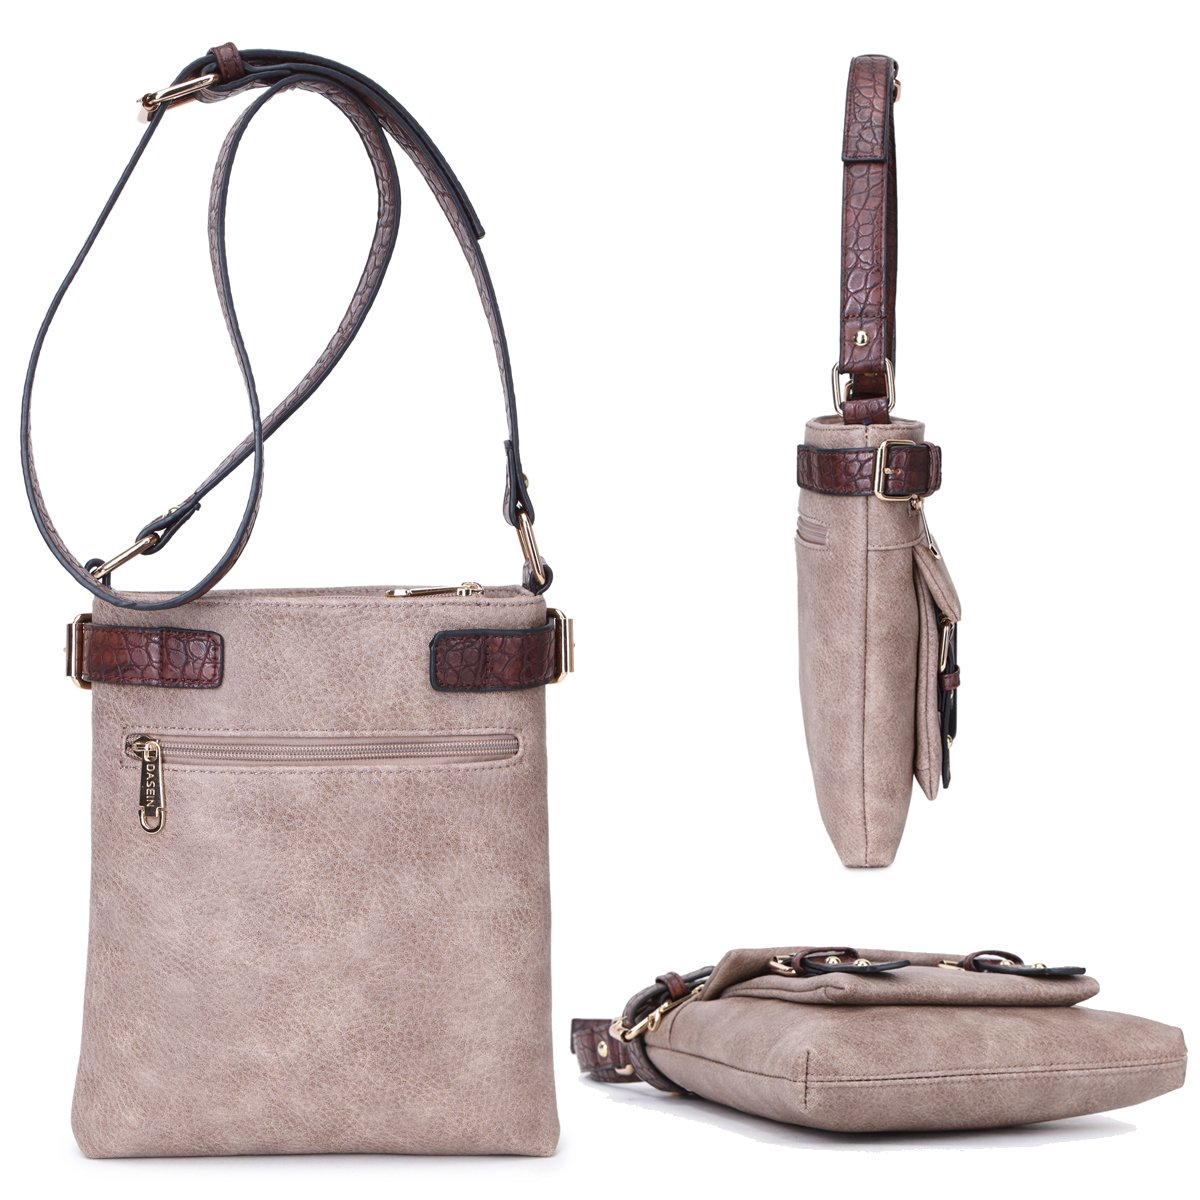 MMK Collection Fashion Crossbody Bag~Messenger Purse for Women~Designer Fashion handbag (MA-09-6333-1-BK) by Marco M. Kerry (Image #2)